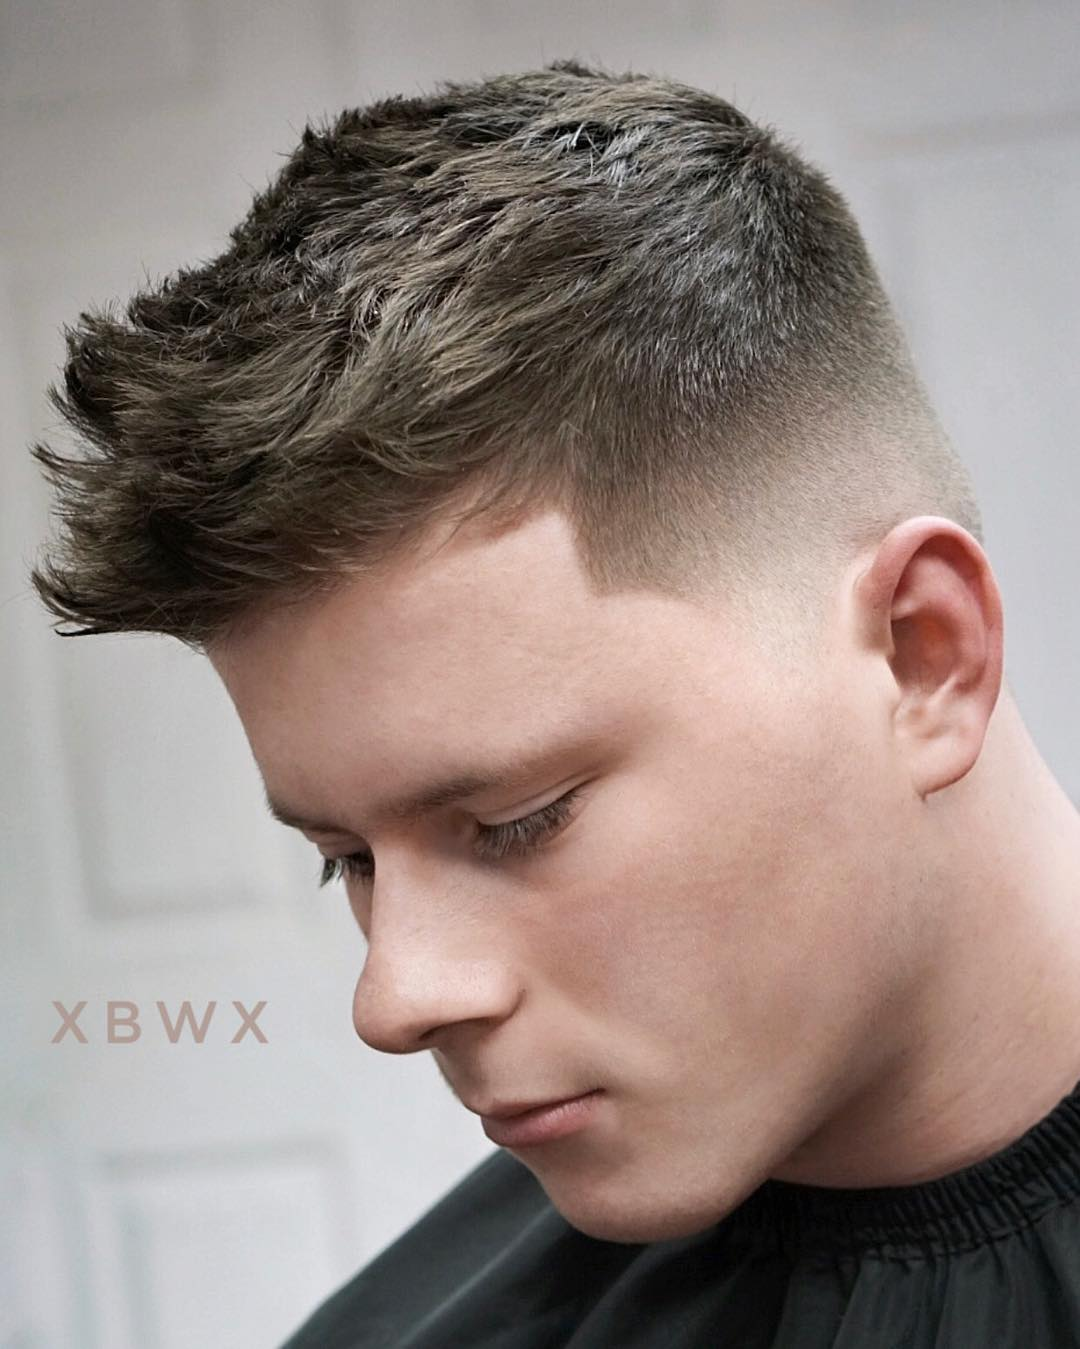 xbigwesx classic short haircut for men